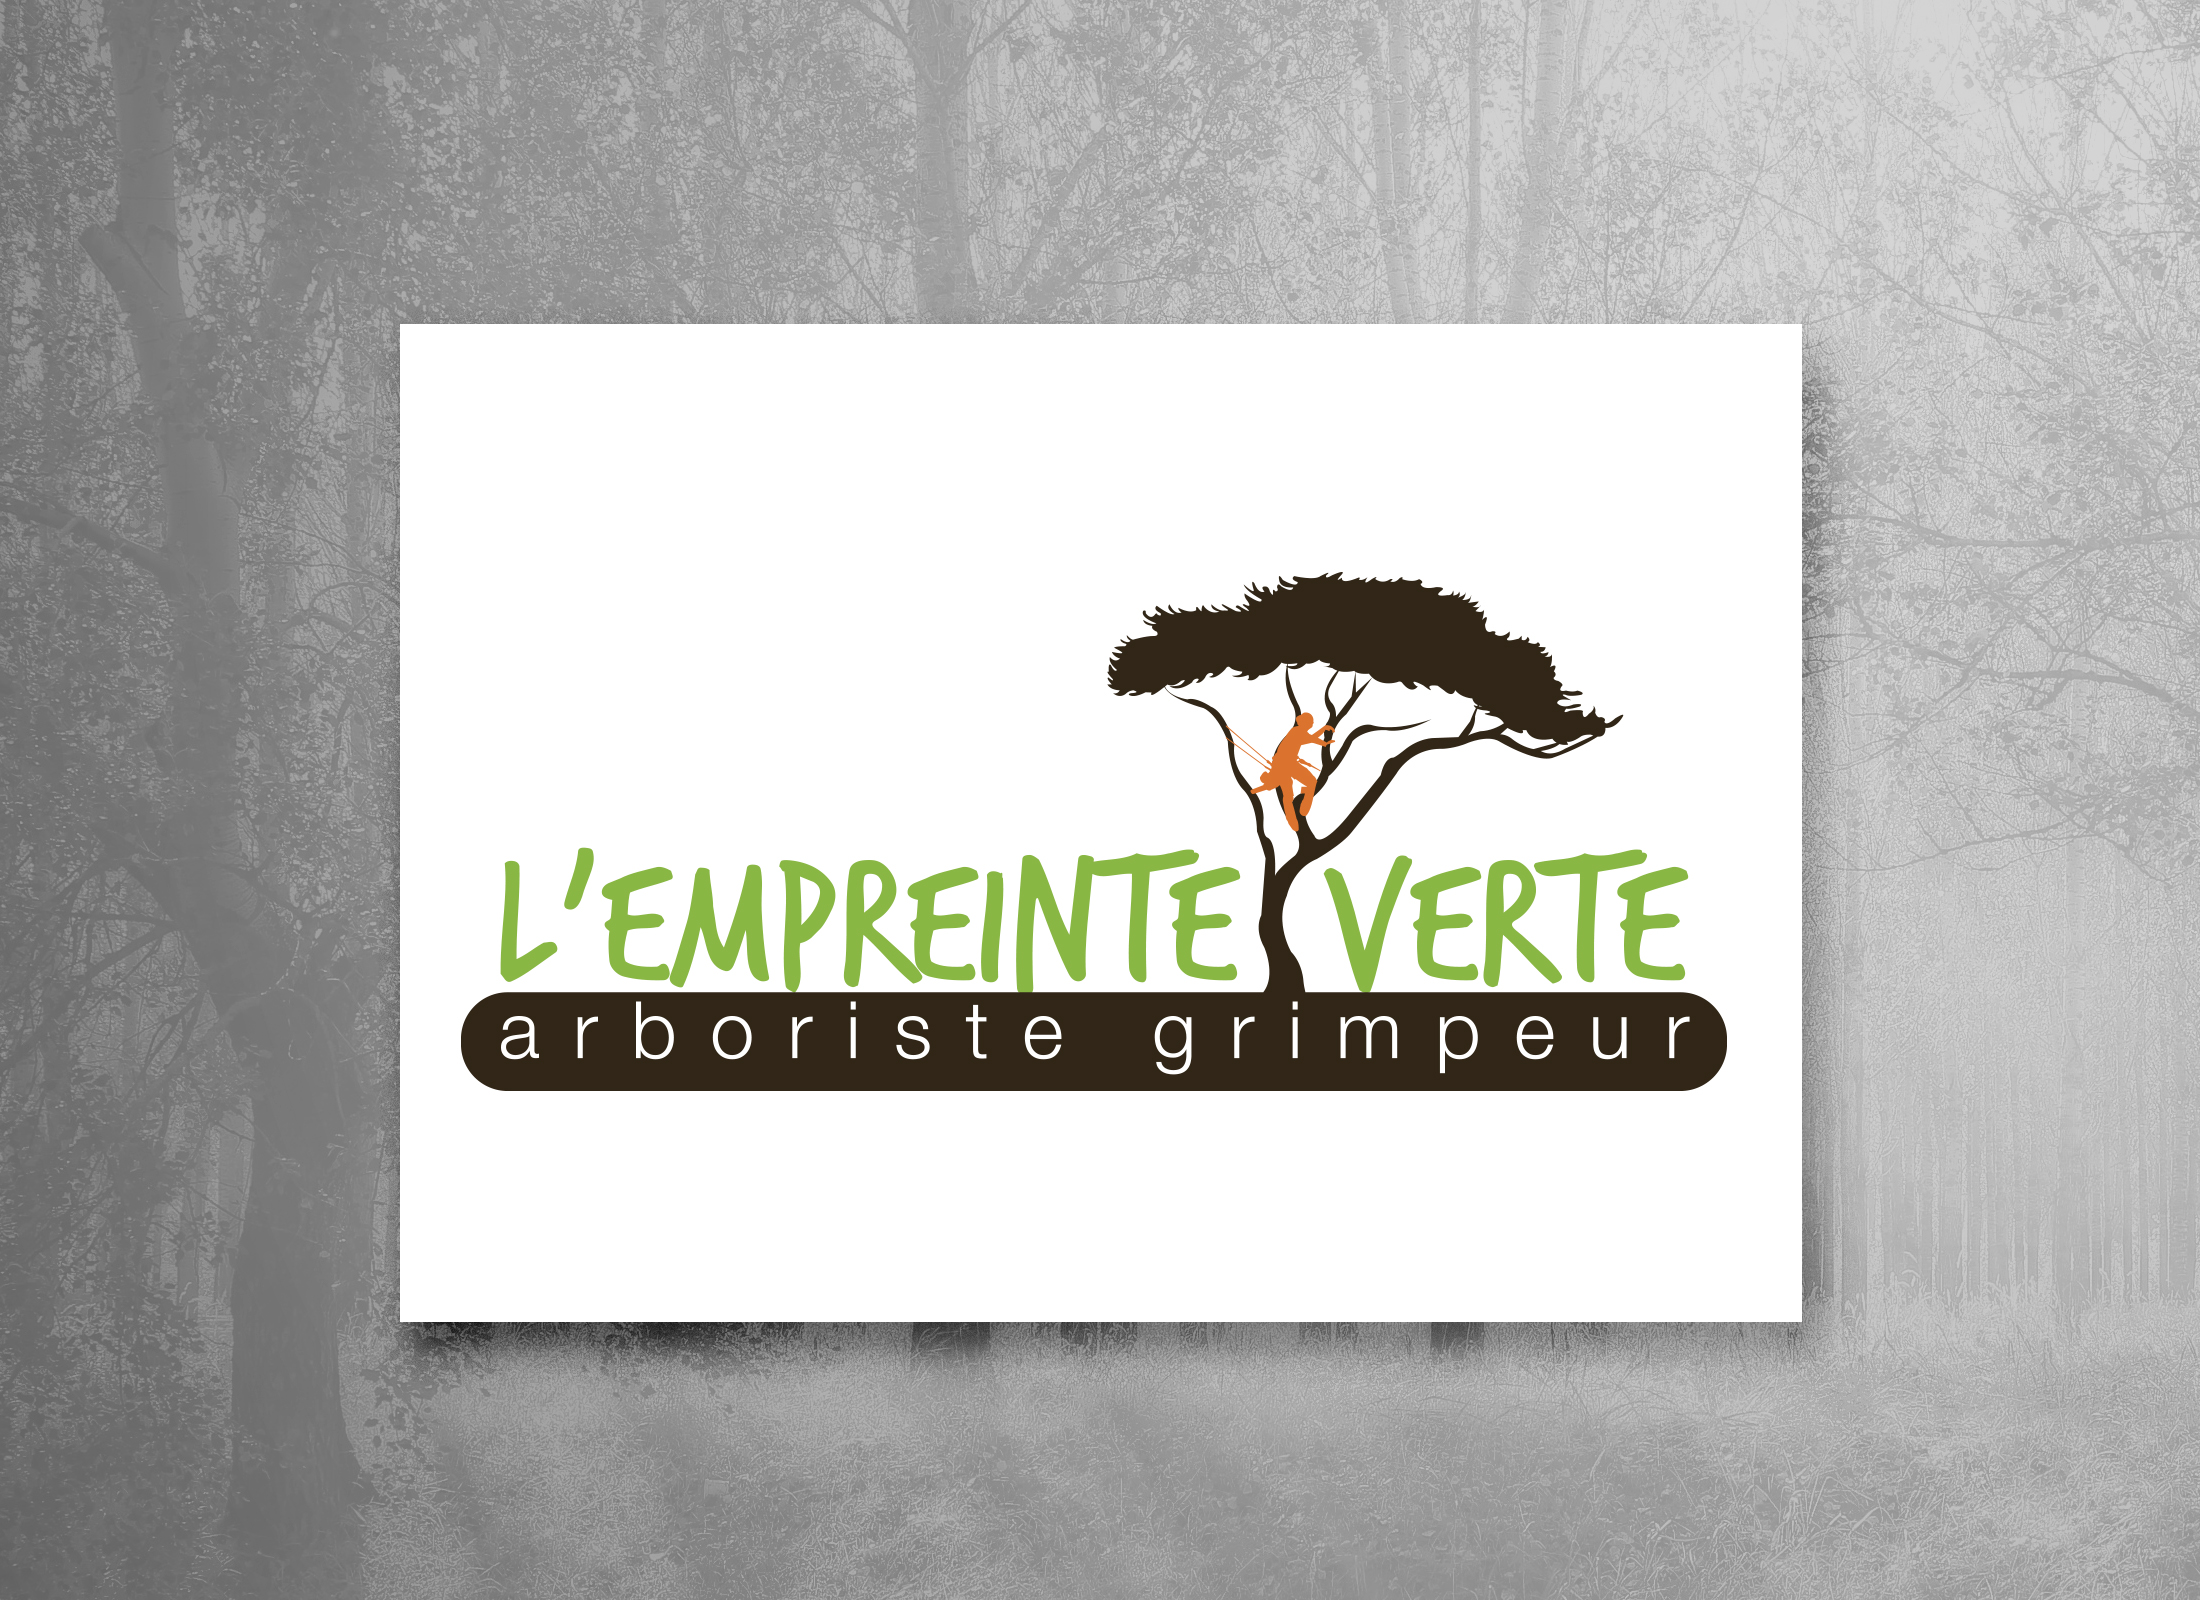 You are currently viewing L'EMPREINTE VERTE